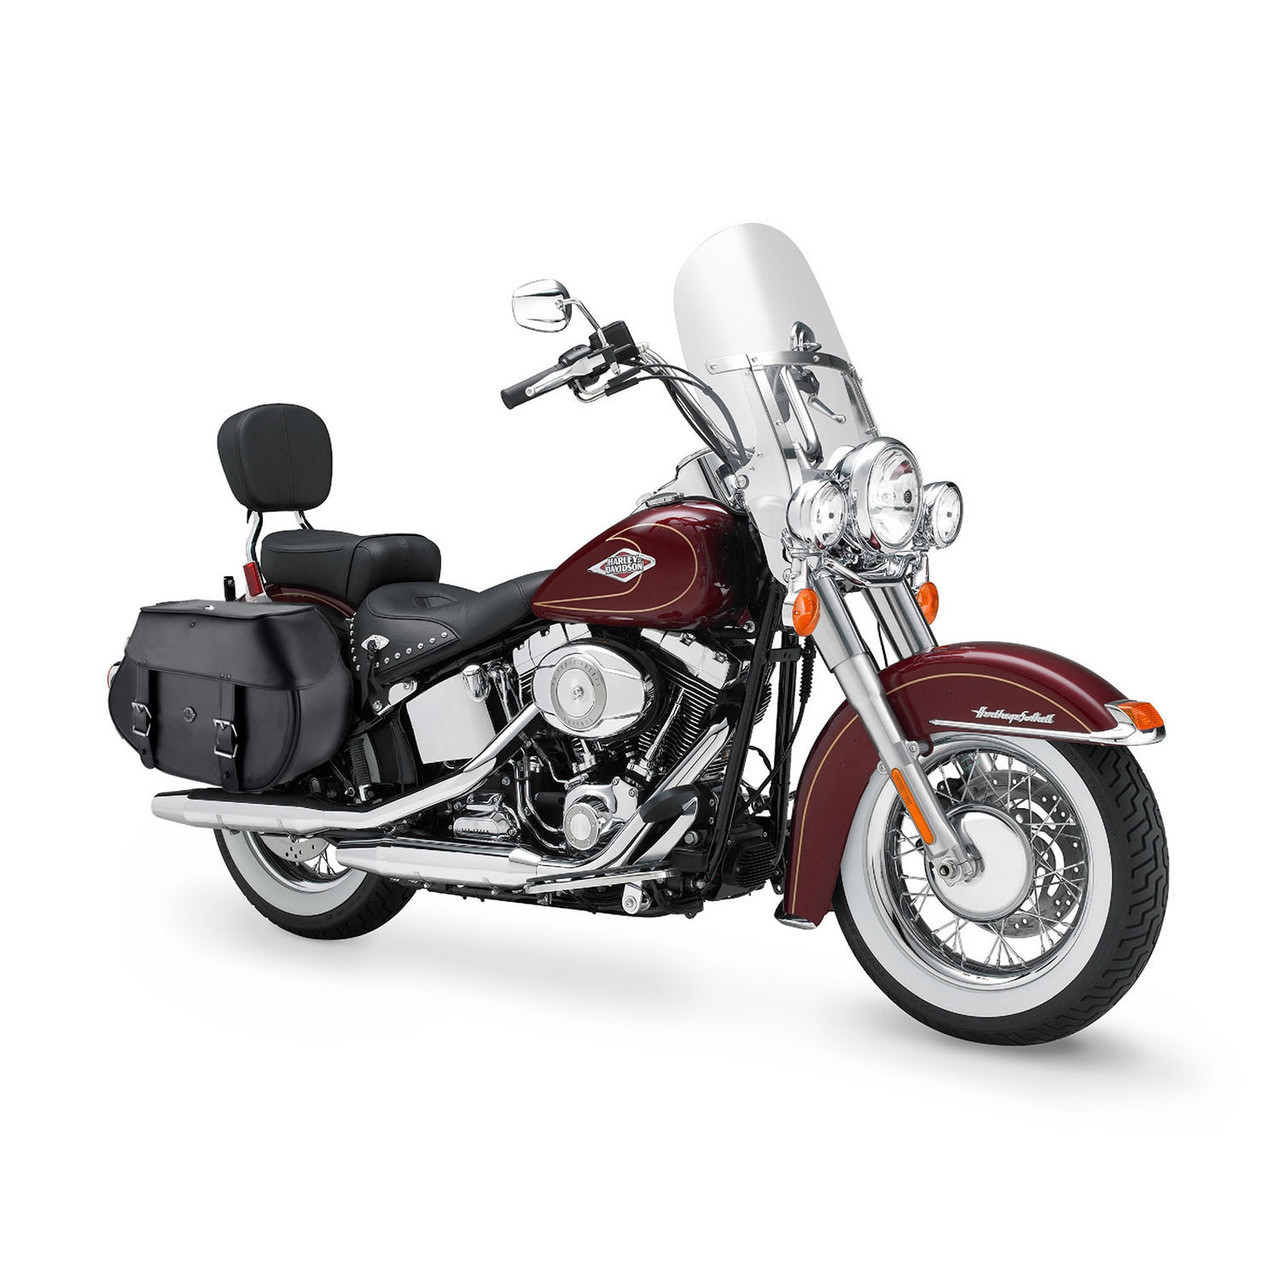 Harley Softail Heritage Specific Saddlebags